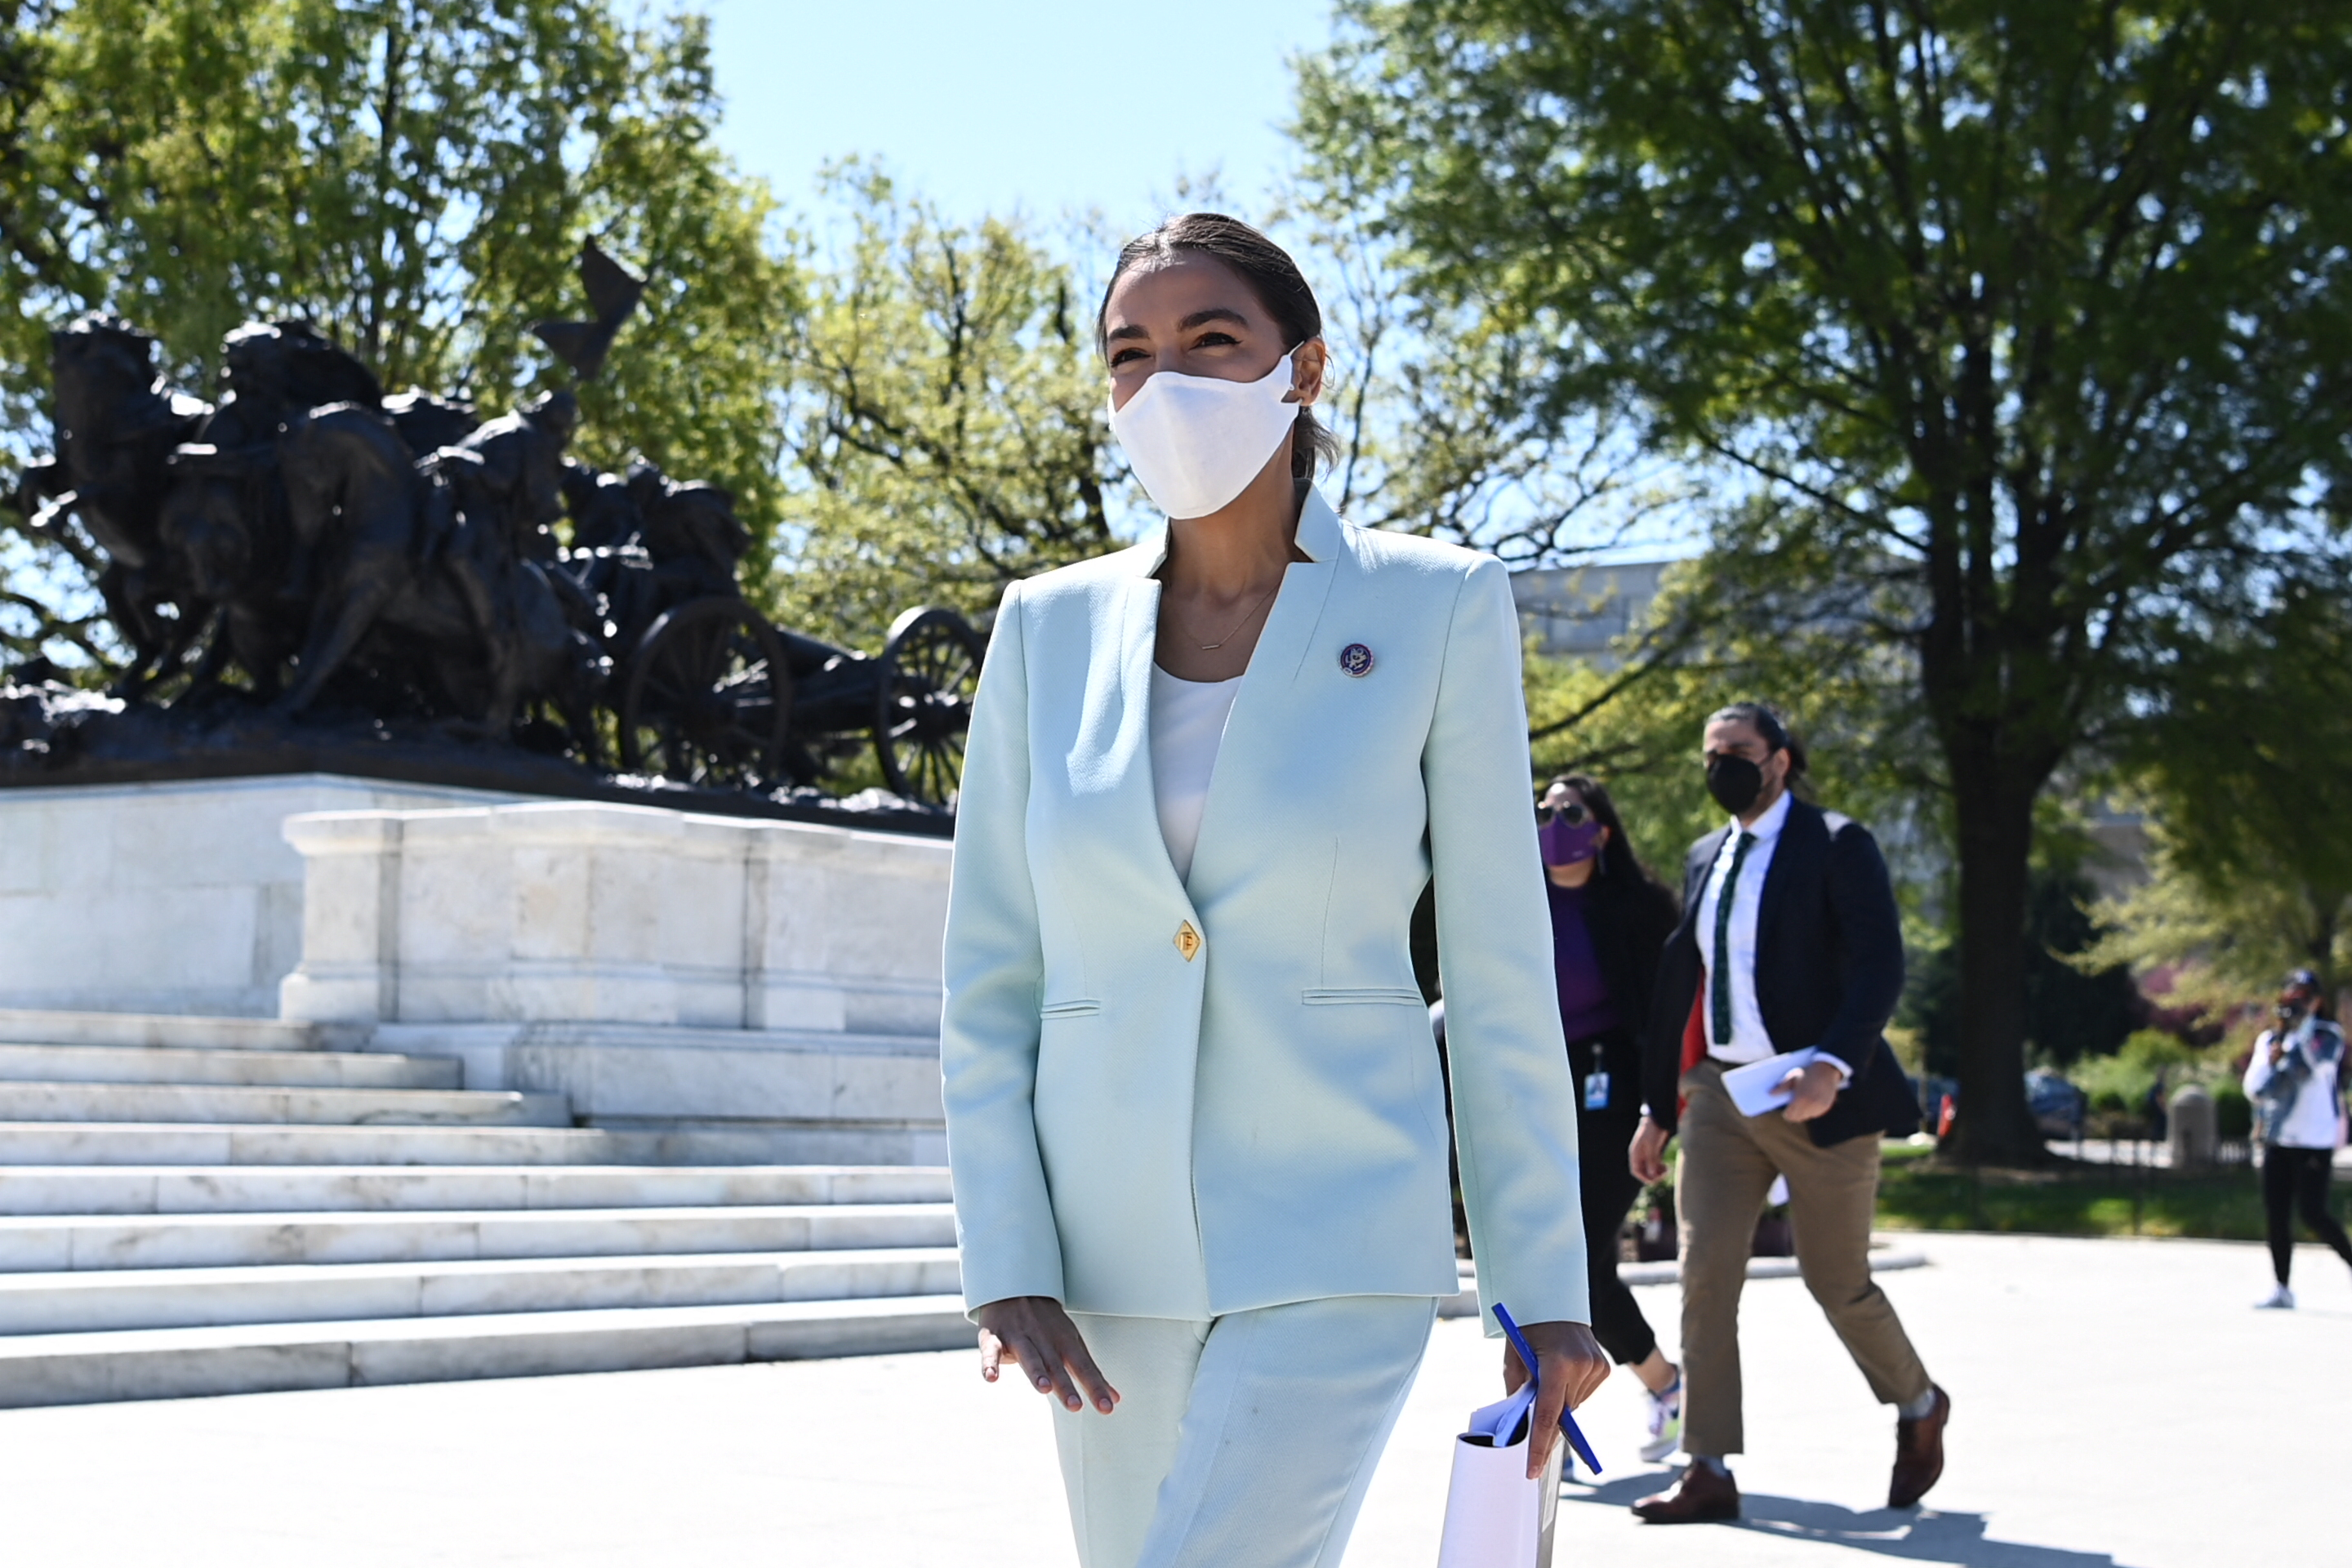 AOC Mocks Ted Cruz, Donald Trump Mar-a-Lago Photo: 'Reminiscing' of 'Coups'